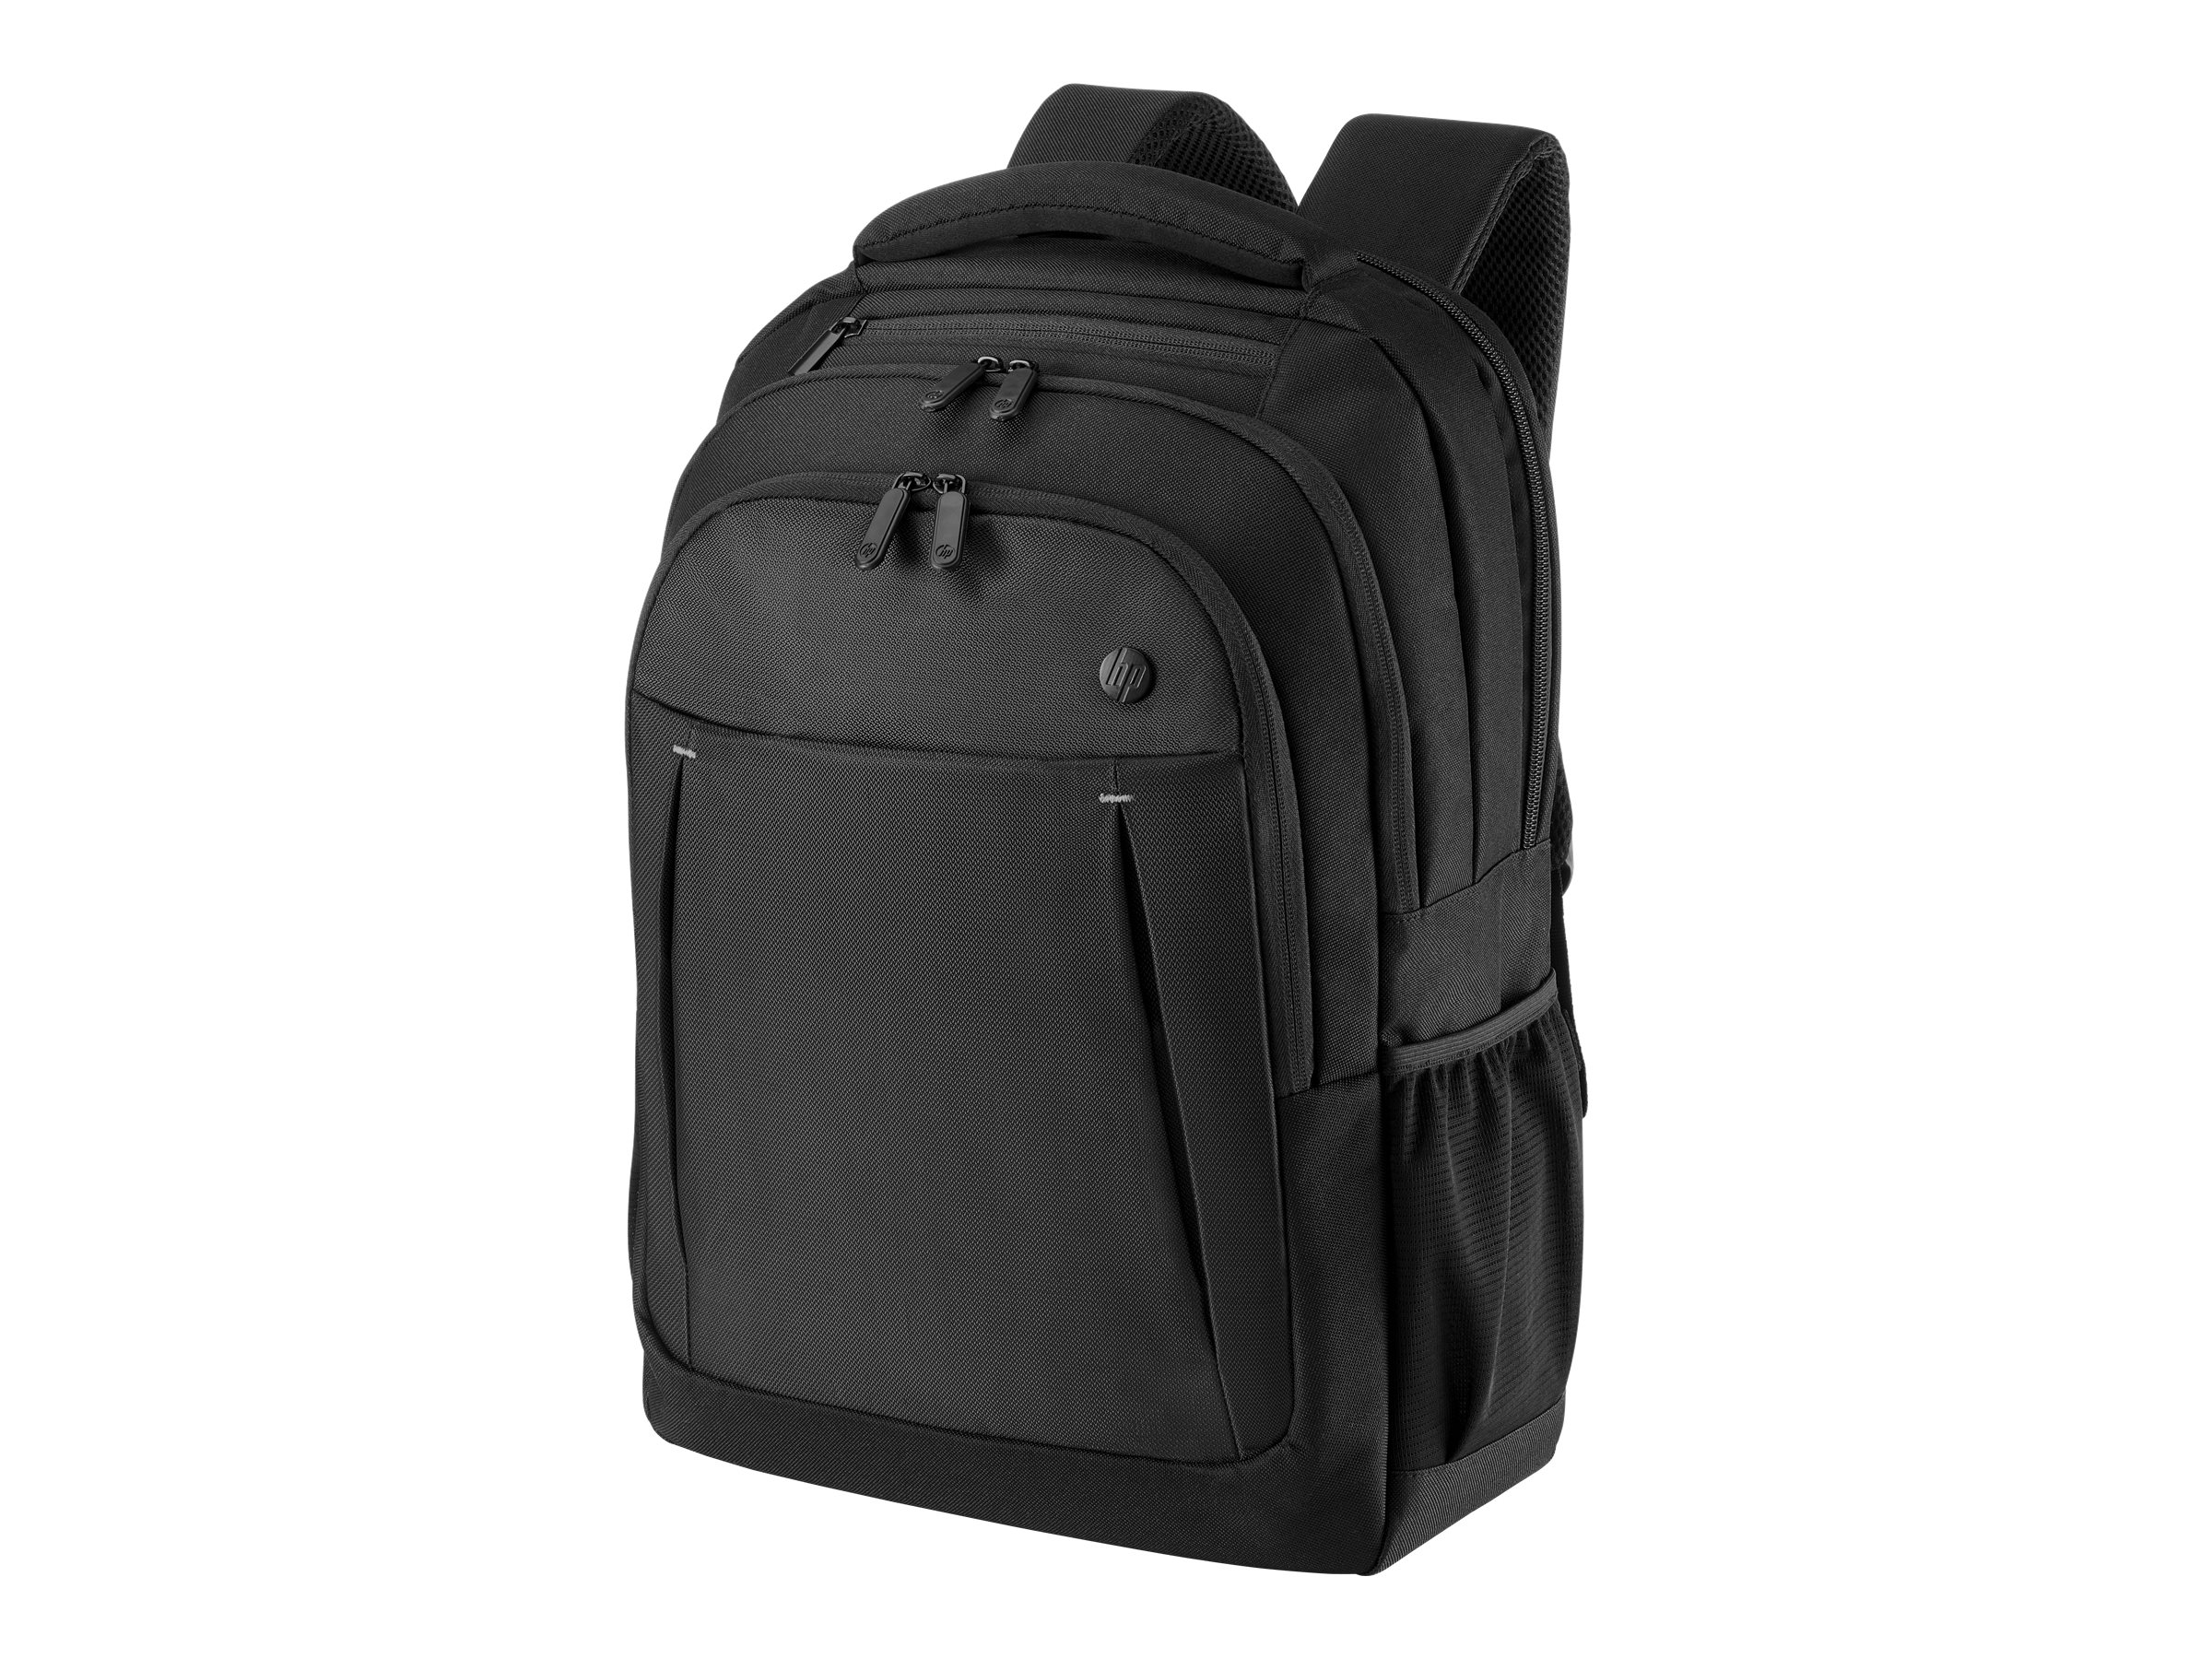 HP Business notebook carrying backpack